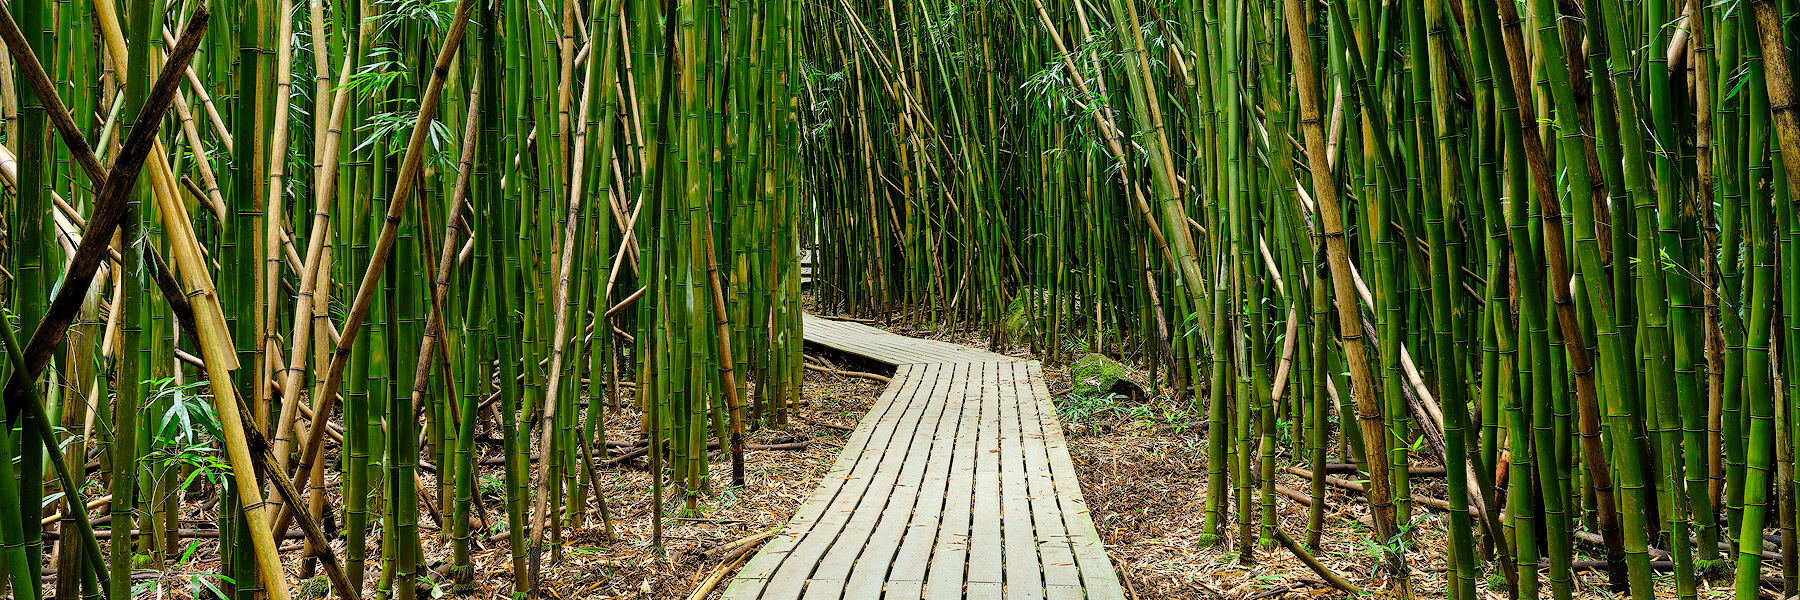 panoramic photograph of a descending path through a lush bamboo forest on the Pipiwai Trail in Hana Hawaii.  Photographed by Andrew Shoemaker